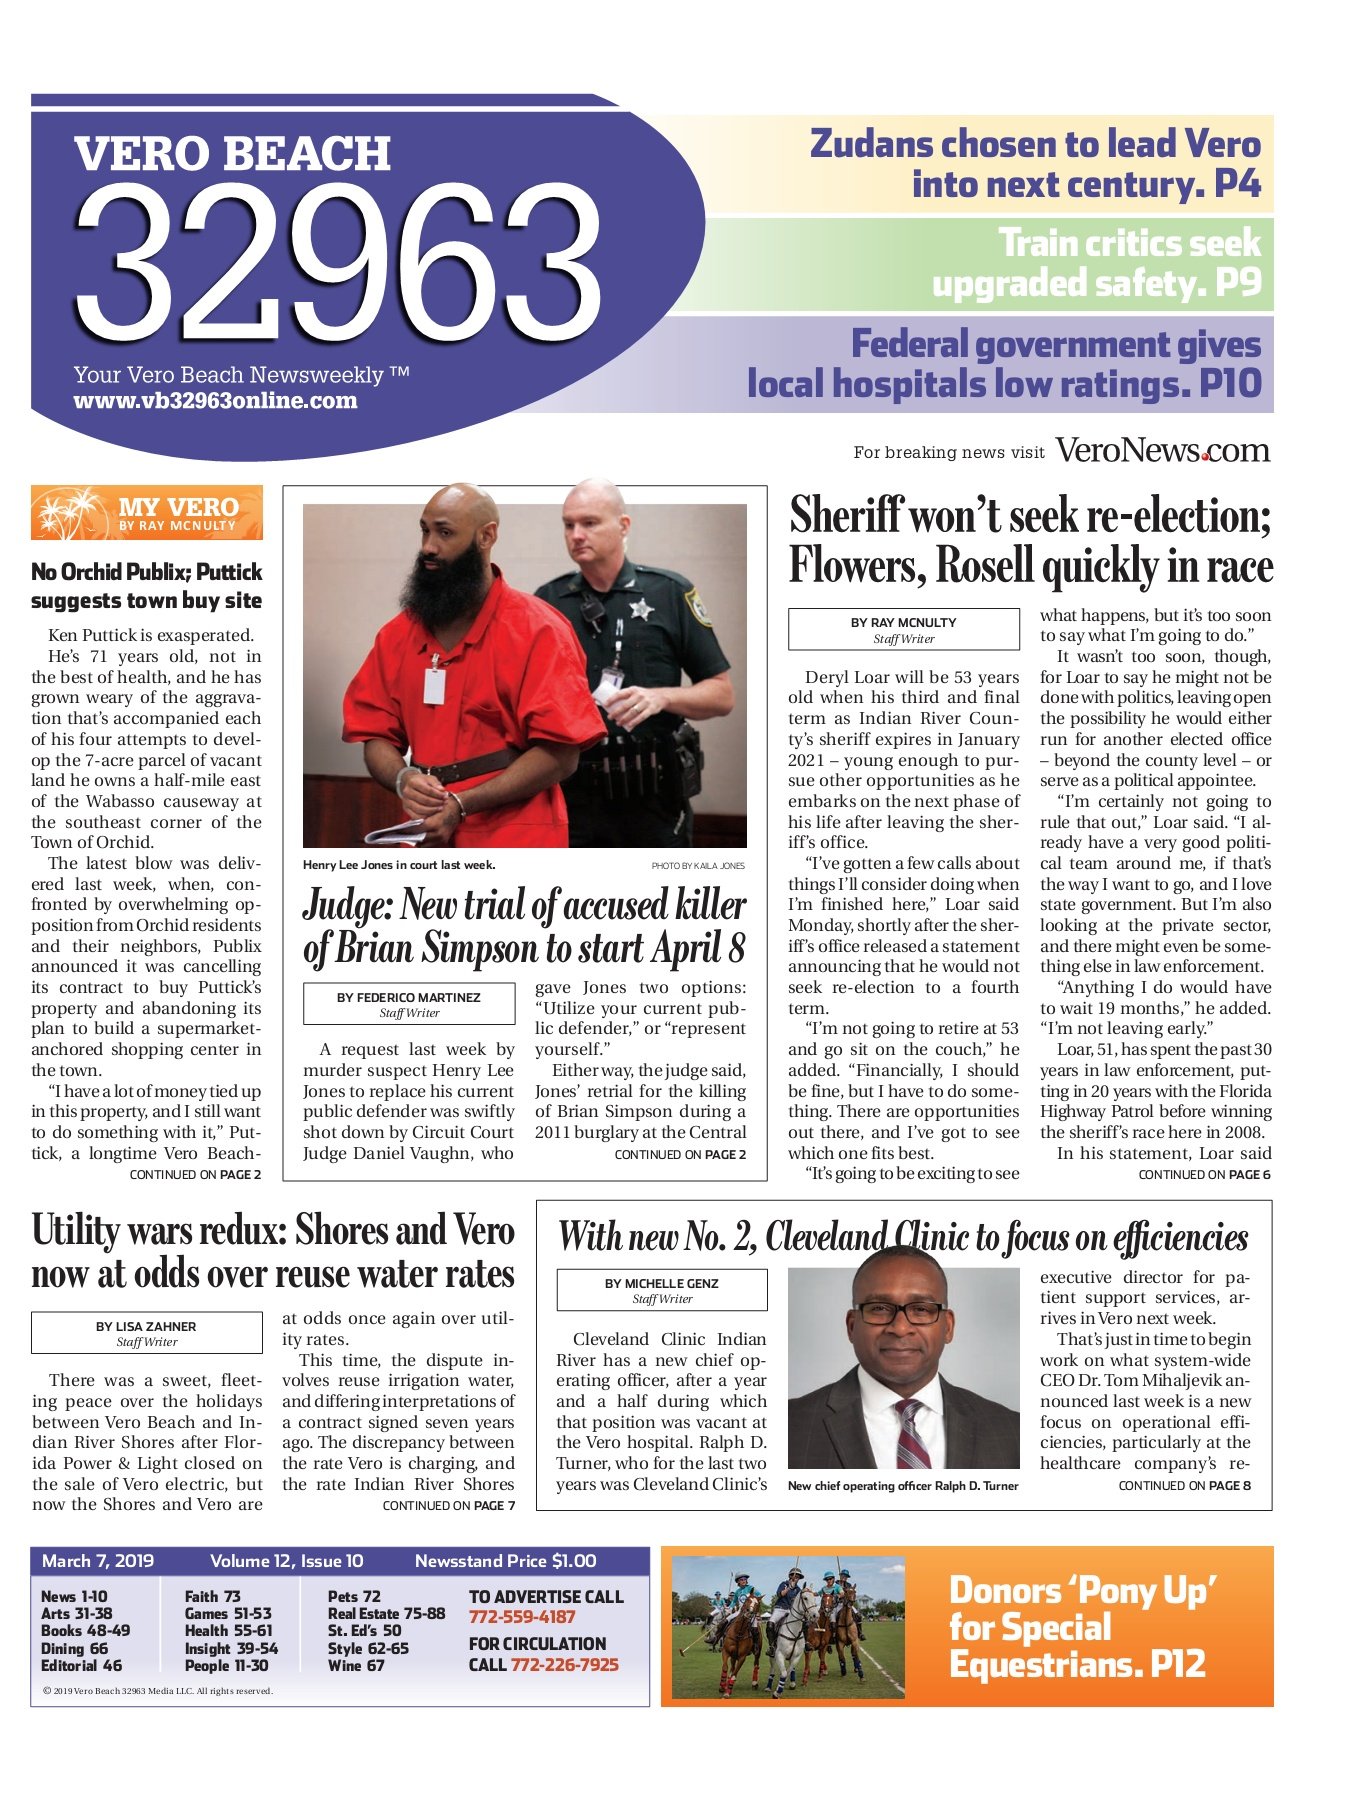 03/07/2019 ISSUE 10